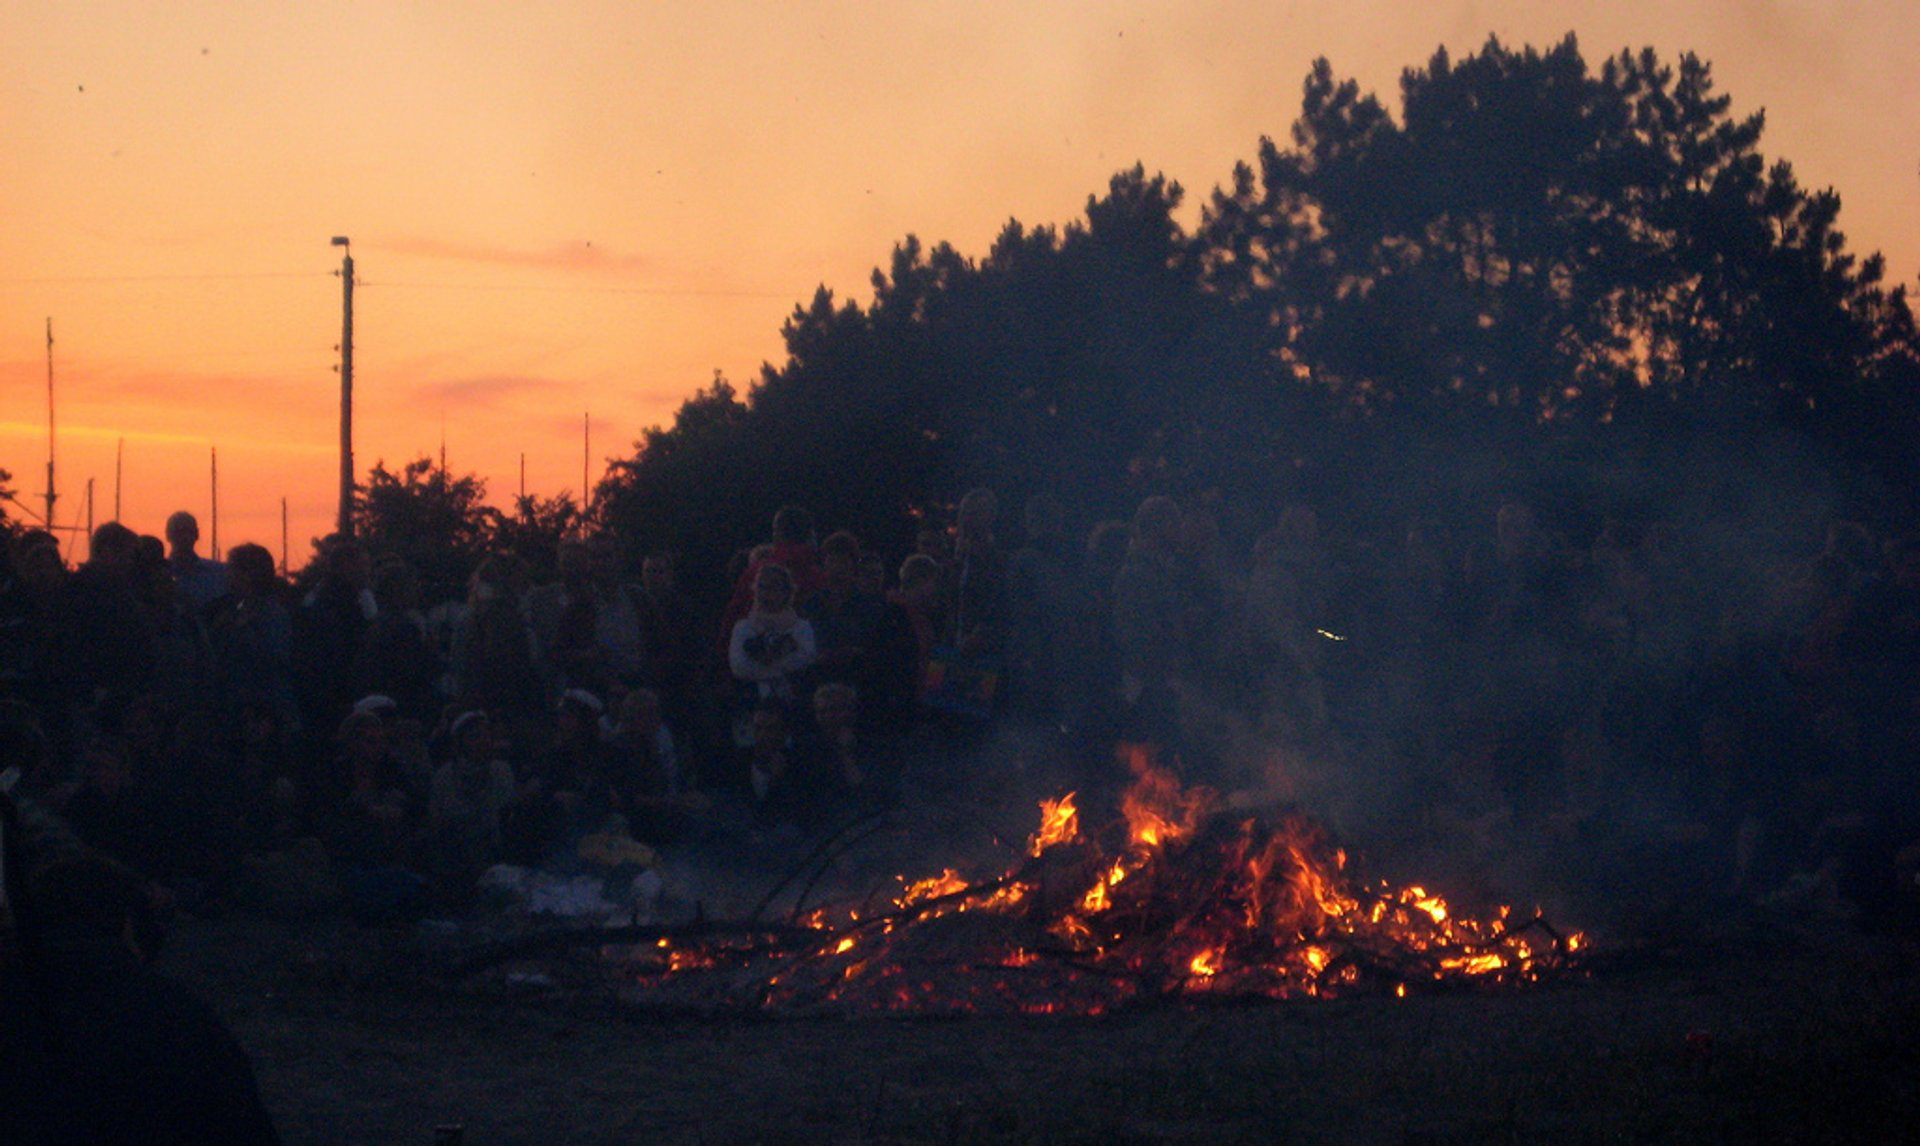 Sankt Hans Aften (Midsummer) in Denmark - Best Season 2019